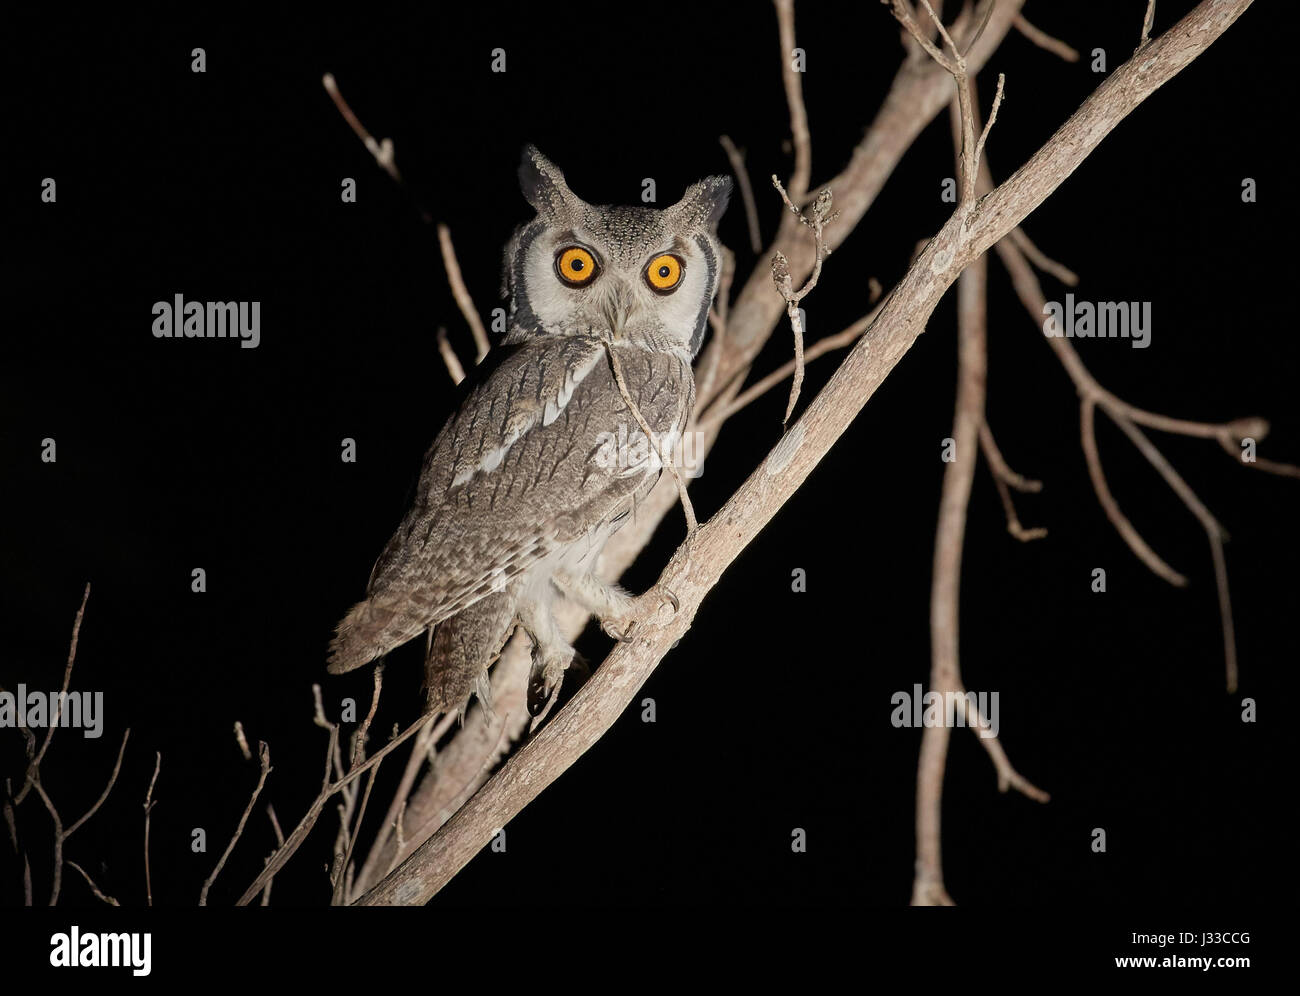 Scops owl on a branch in Krueger National park, South Africa, Africa - Stock Image